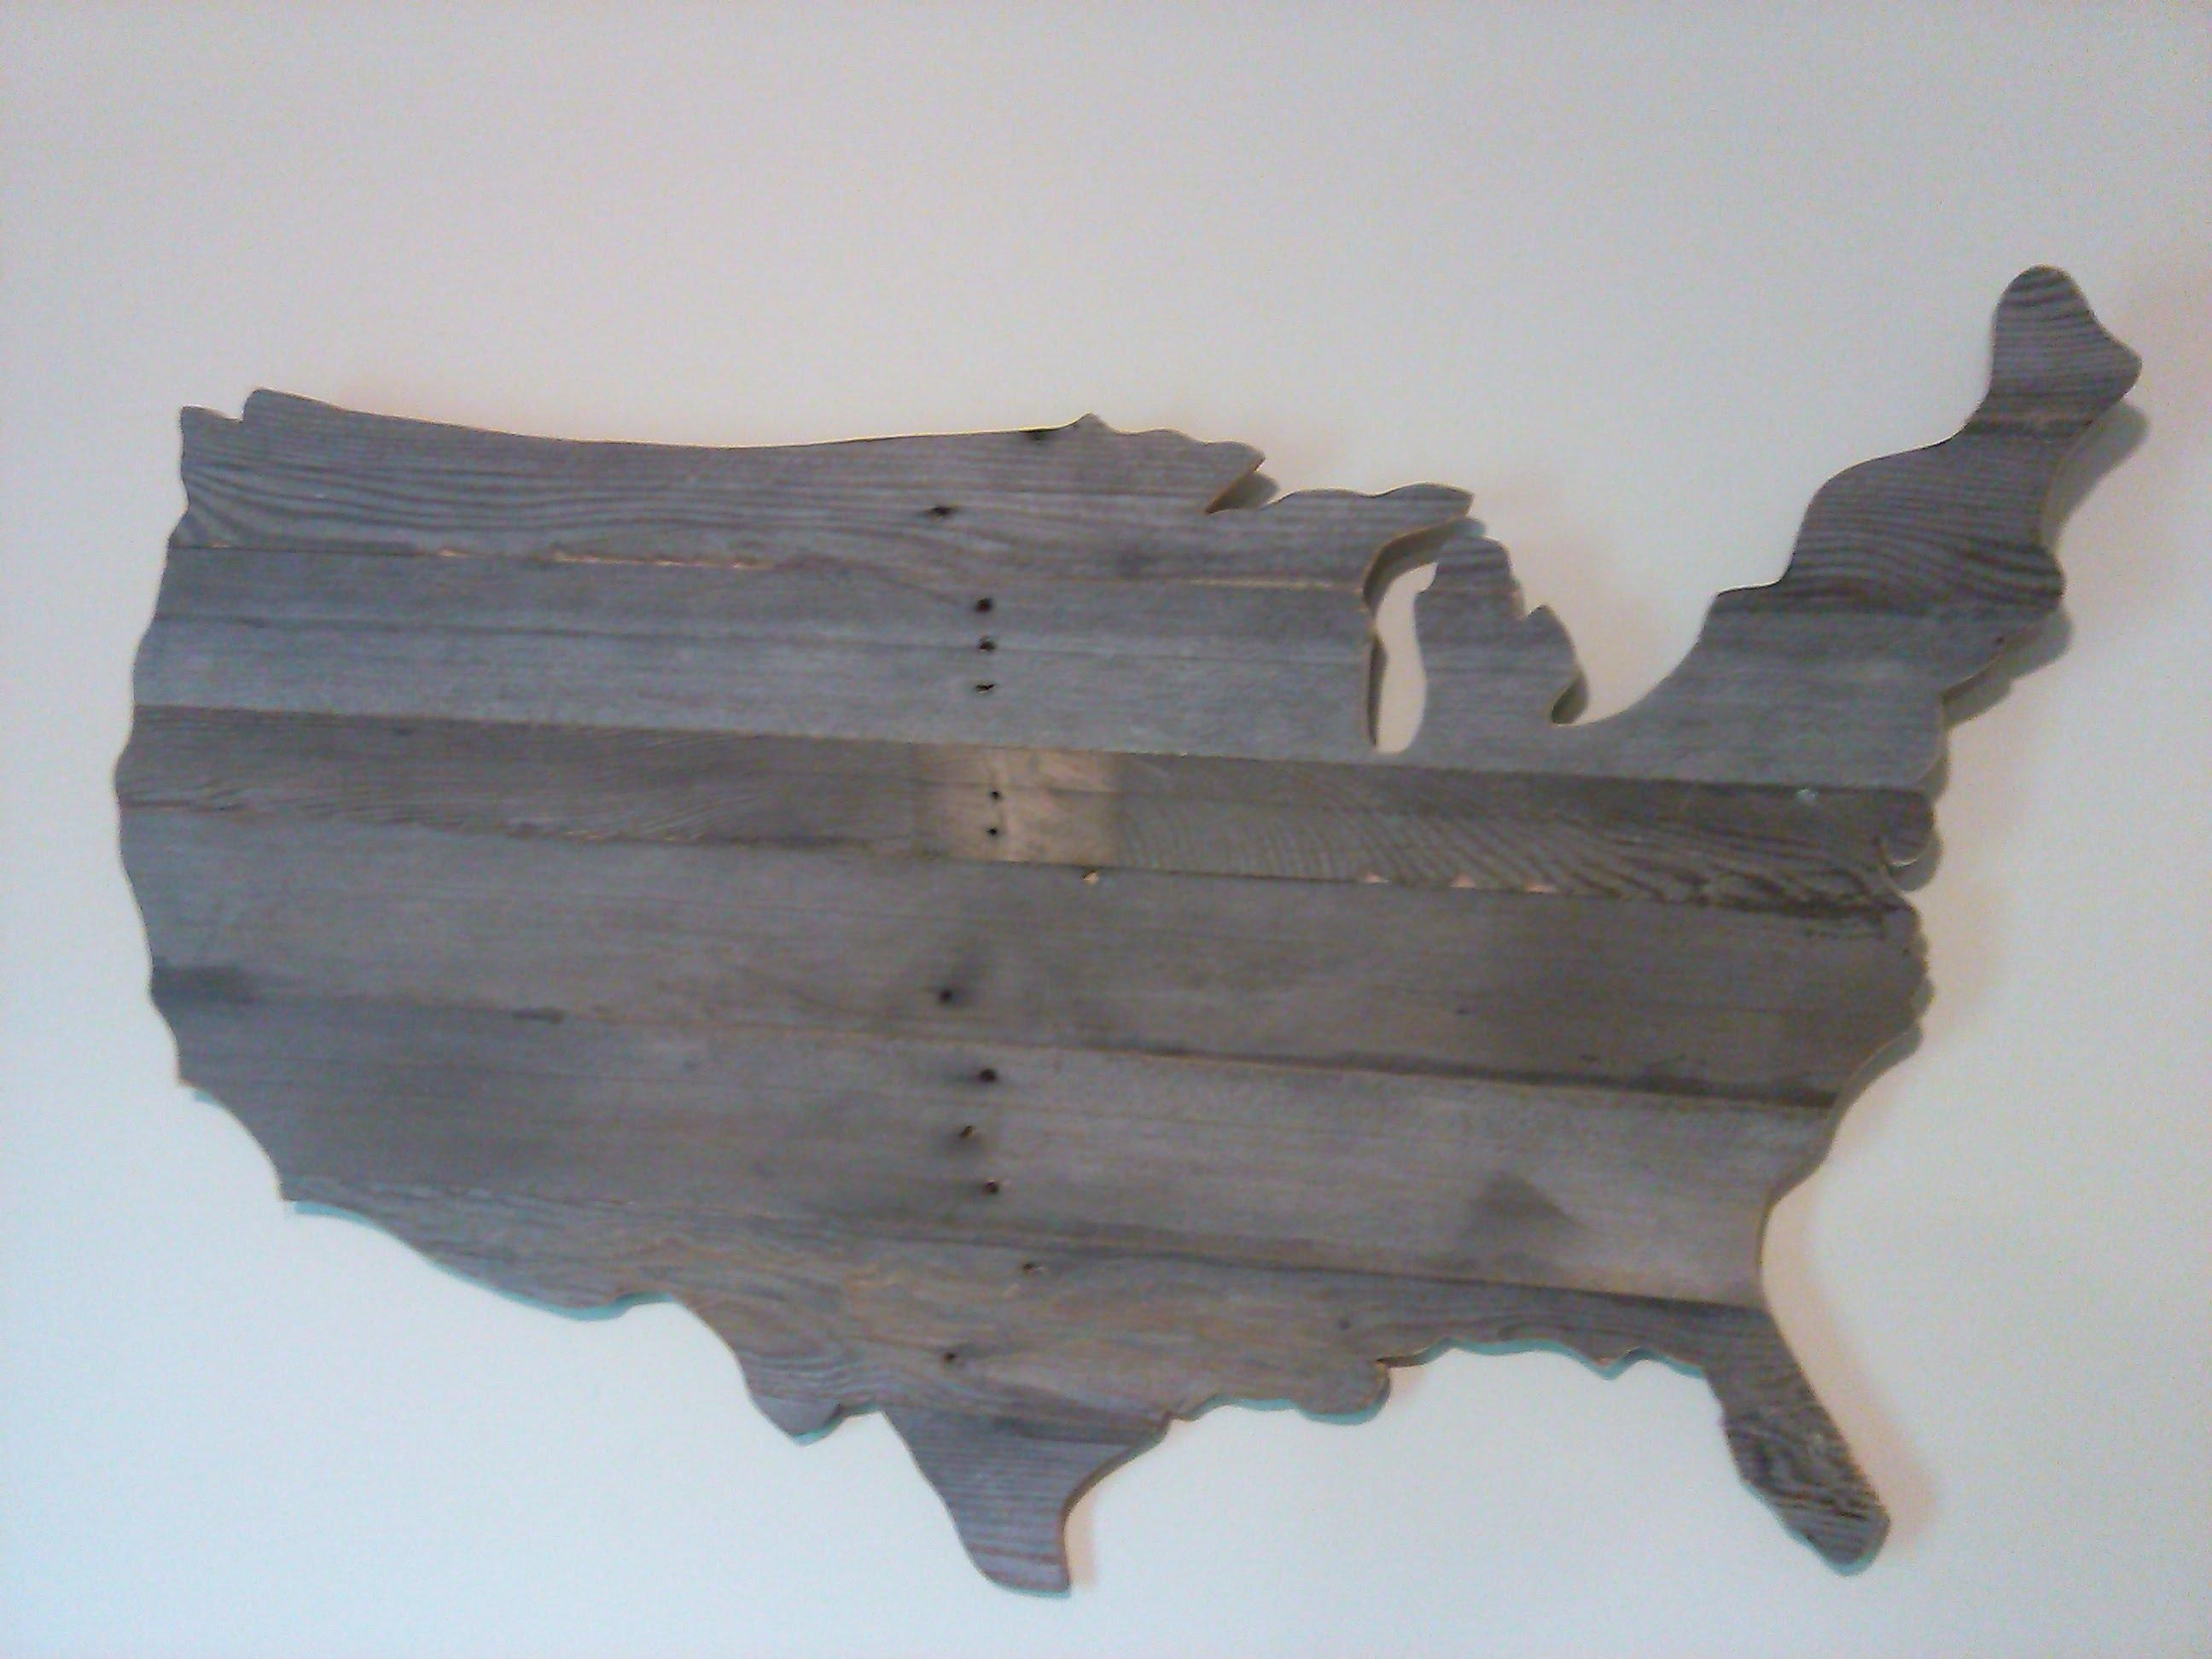 How To Make A Wooden Usa Map Wall Art Out Of Pallets – Youtube Inside Wooden World Map Wall Art (Image 7 of 20)